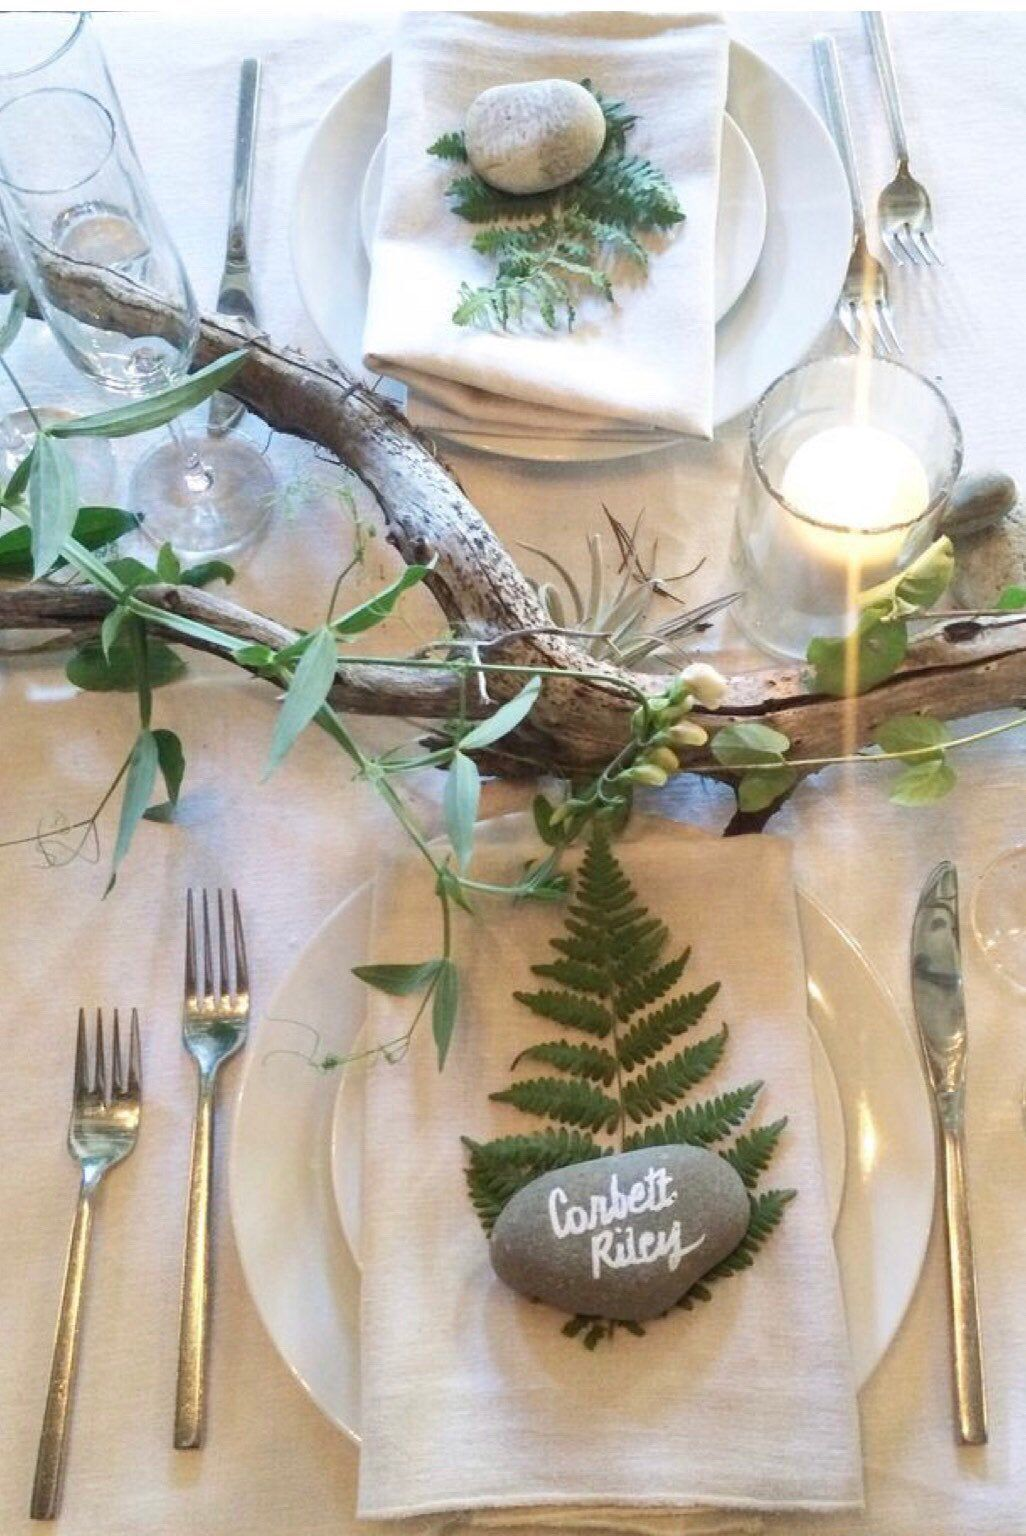 Enchanted Woodland Table Decor Place Settings with Natural Elements in Your Choice of Wood & Stone